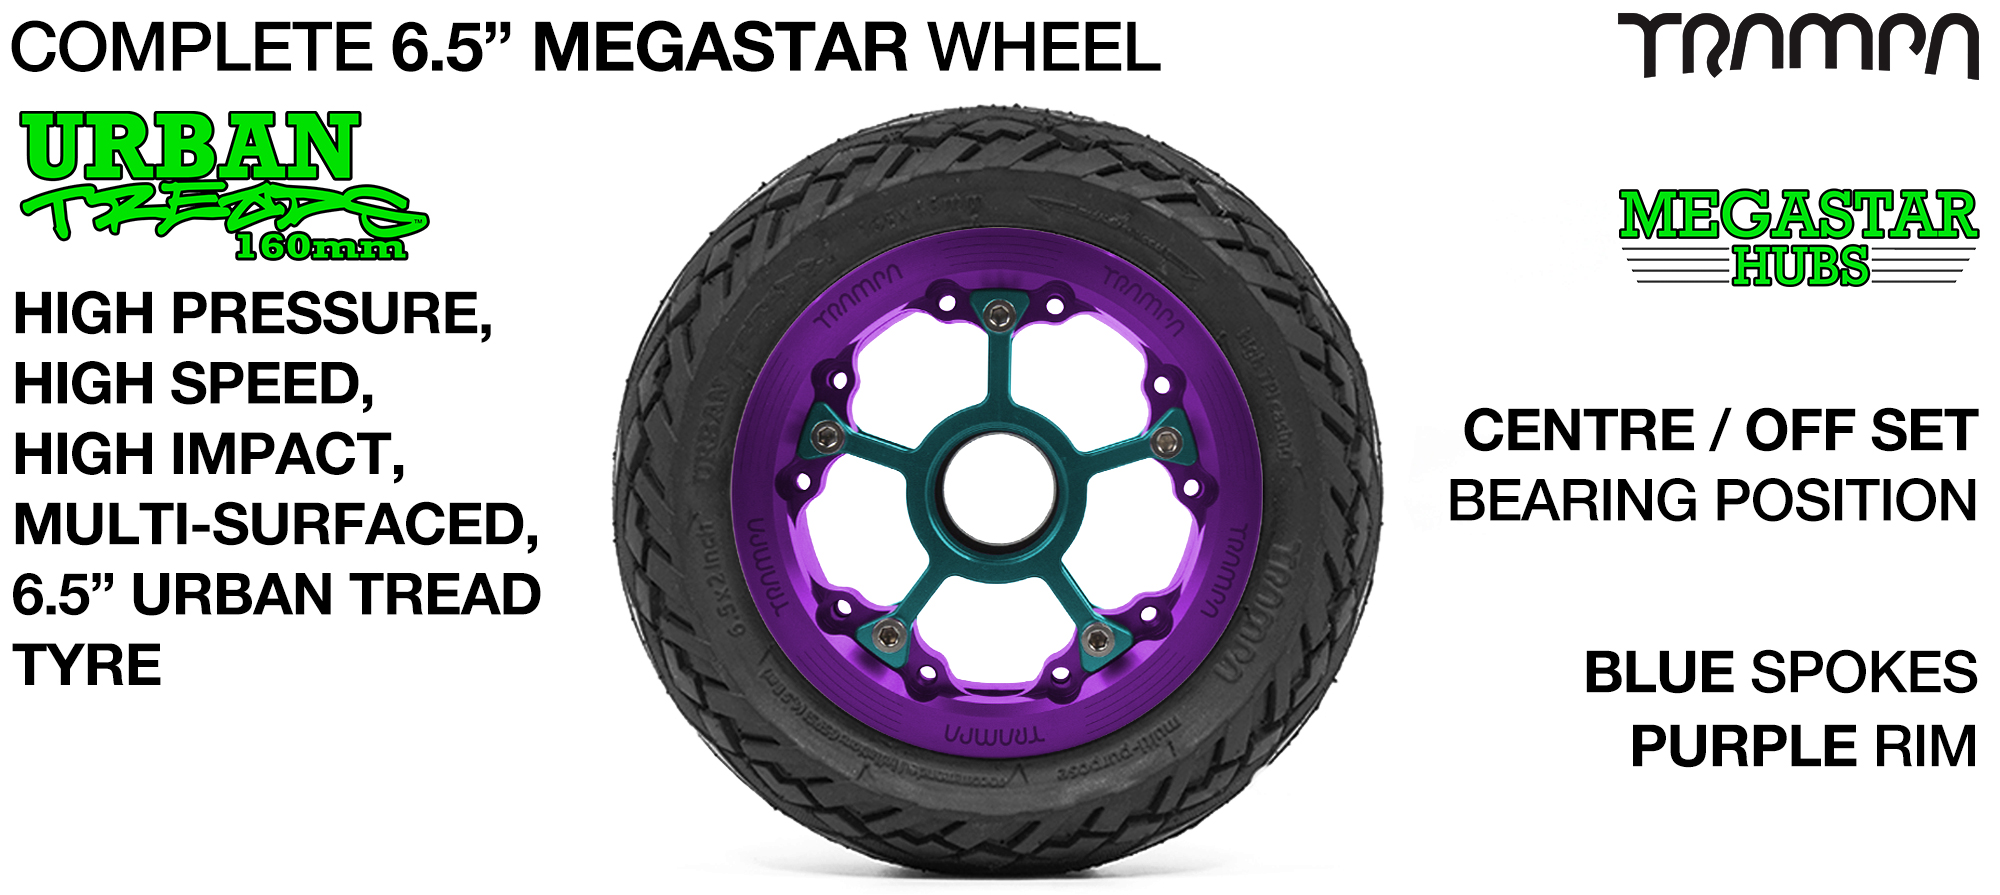 PURPLE MEGASTAR Rims with BLUE Spokes & 6.5 Inch URBAN Treads Tyres